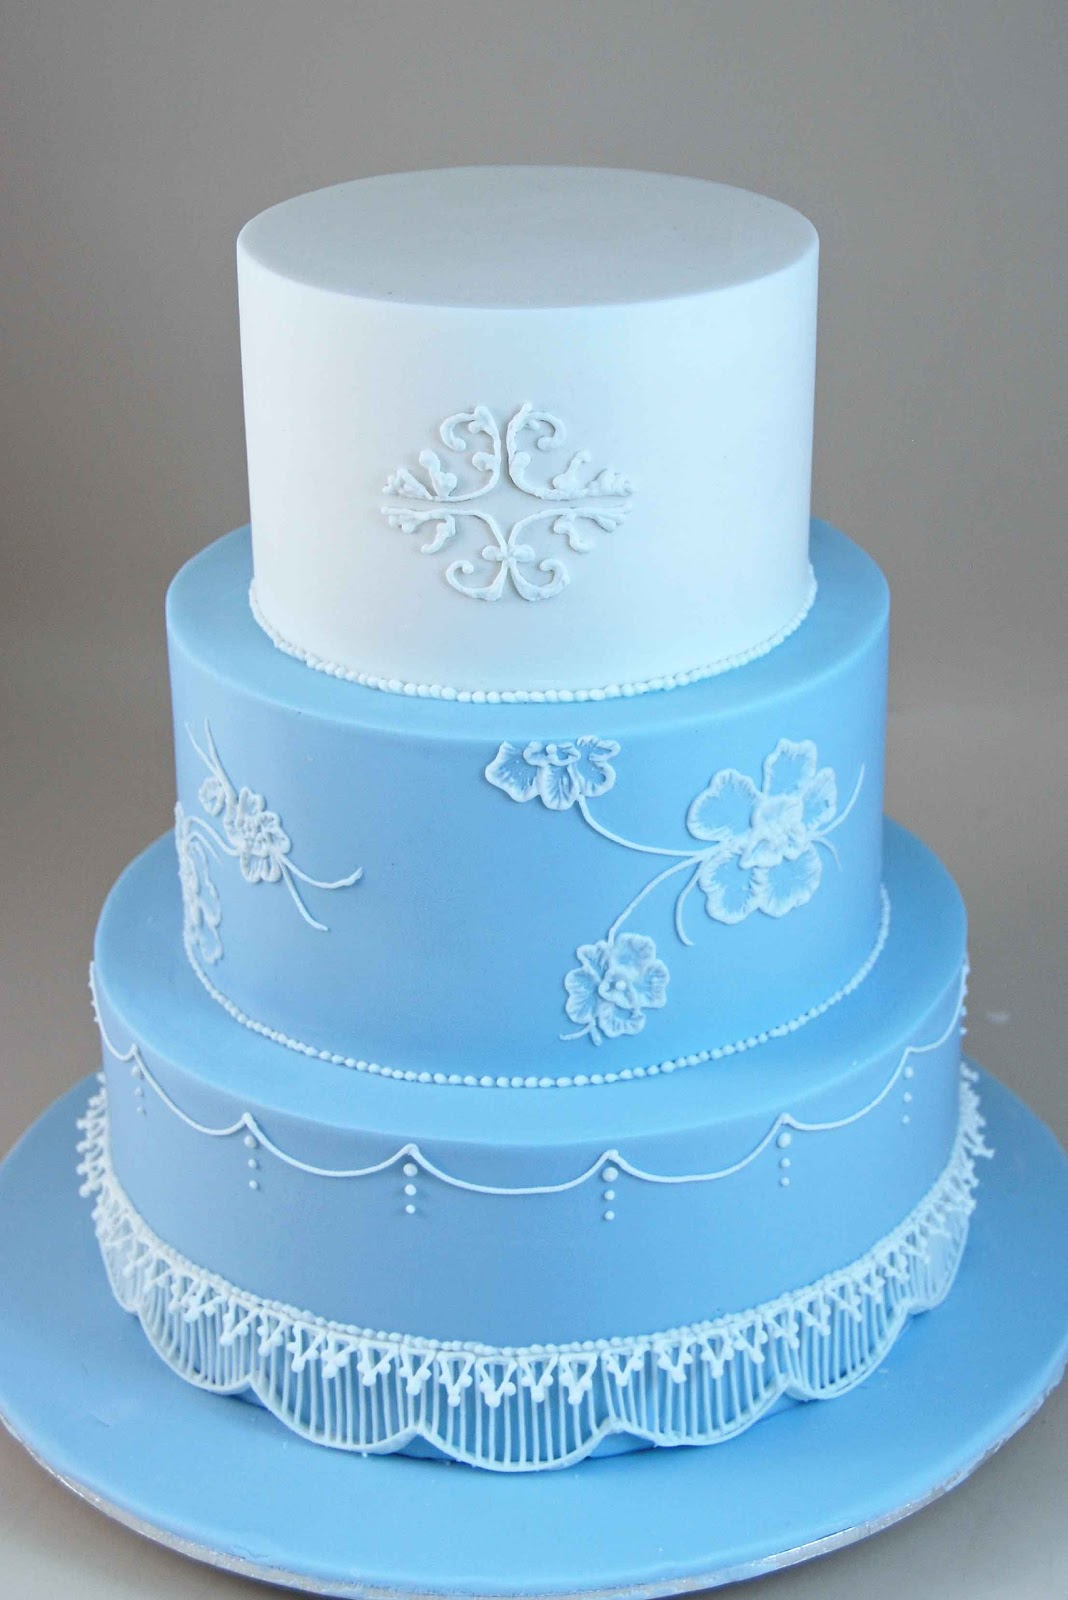 3 Tier Piped Wedding Cake. Advanced Piping ...